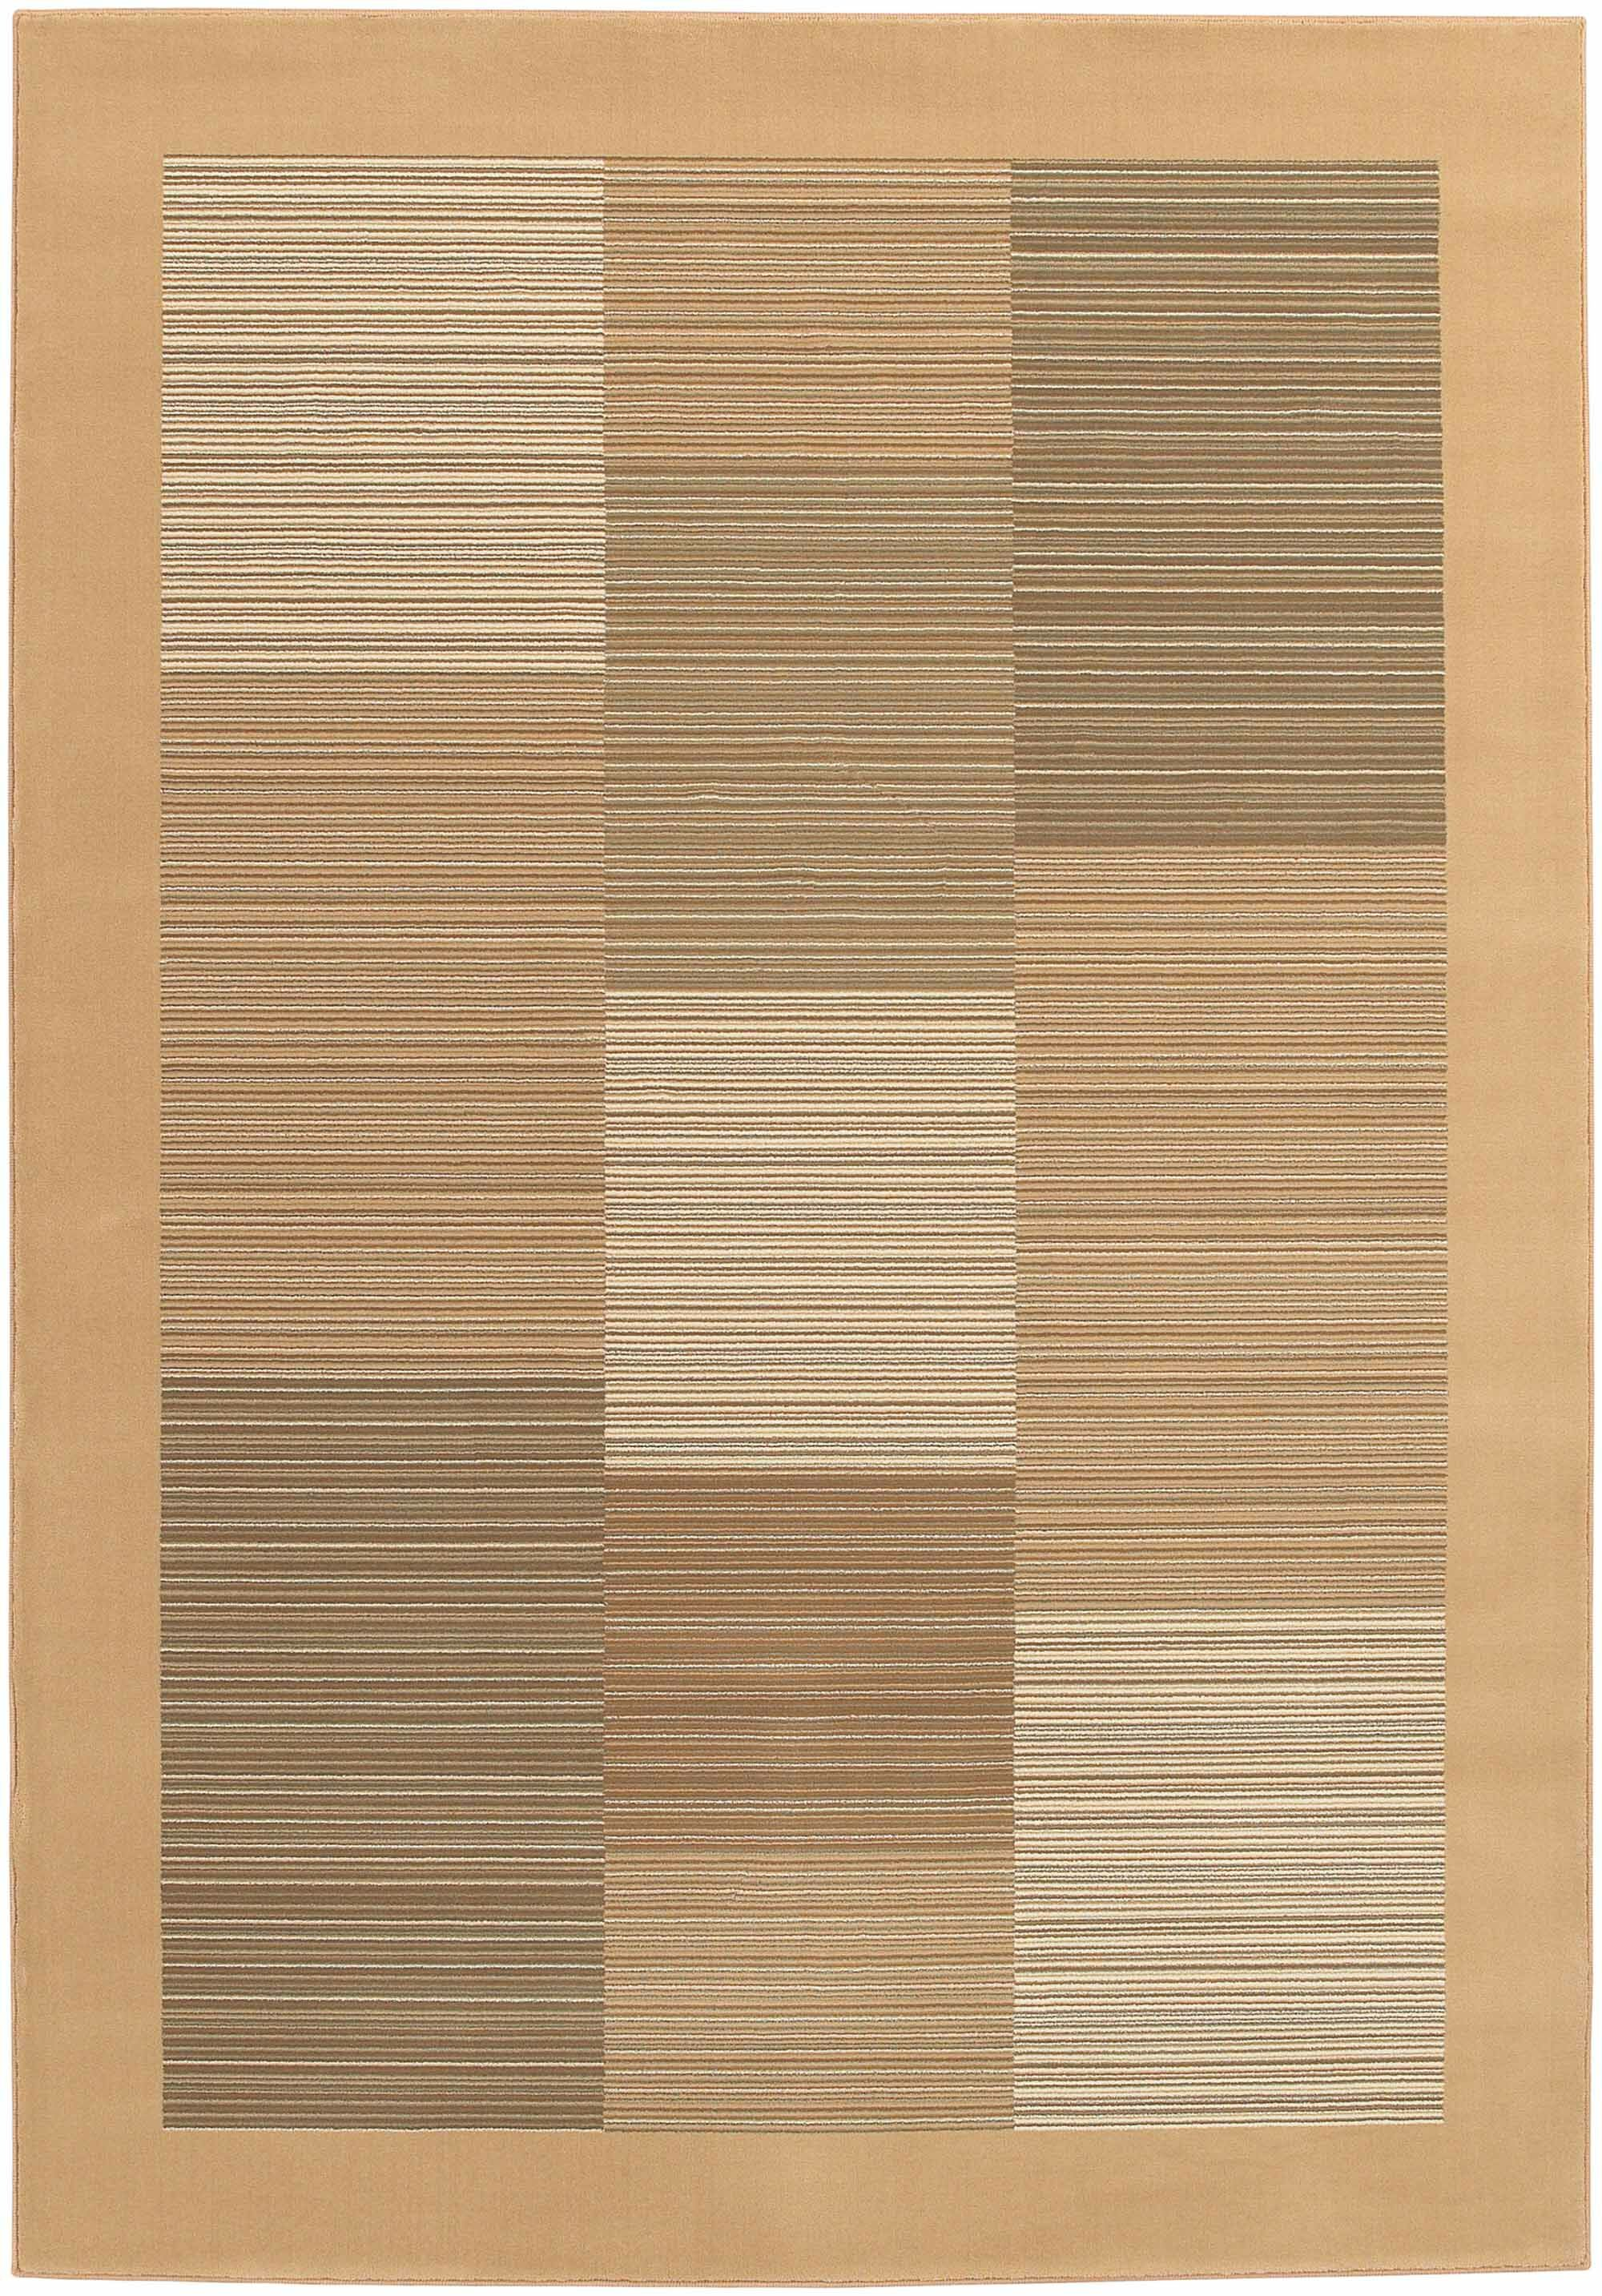 Judlaph Sahara Tan Area Rug Rug Size: Rectangle 7'10